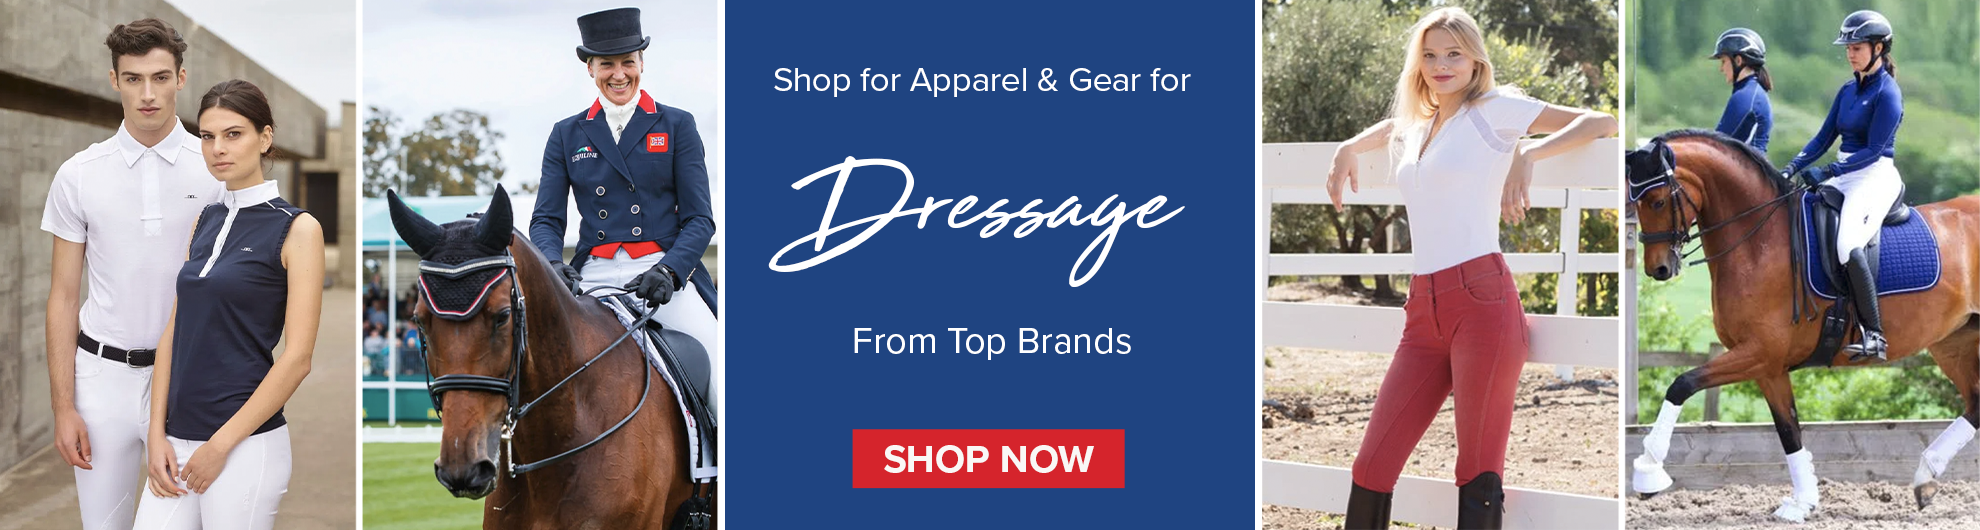 Dressage Apparel & Gear for Hose and Rider